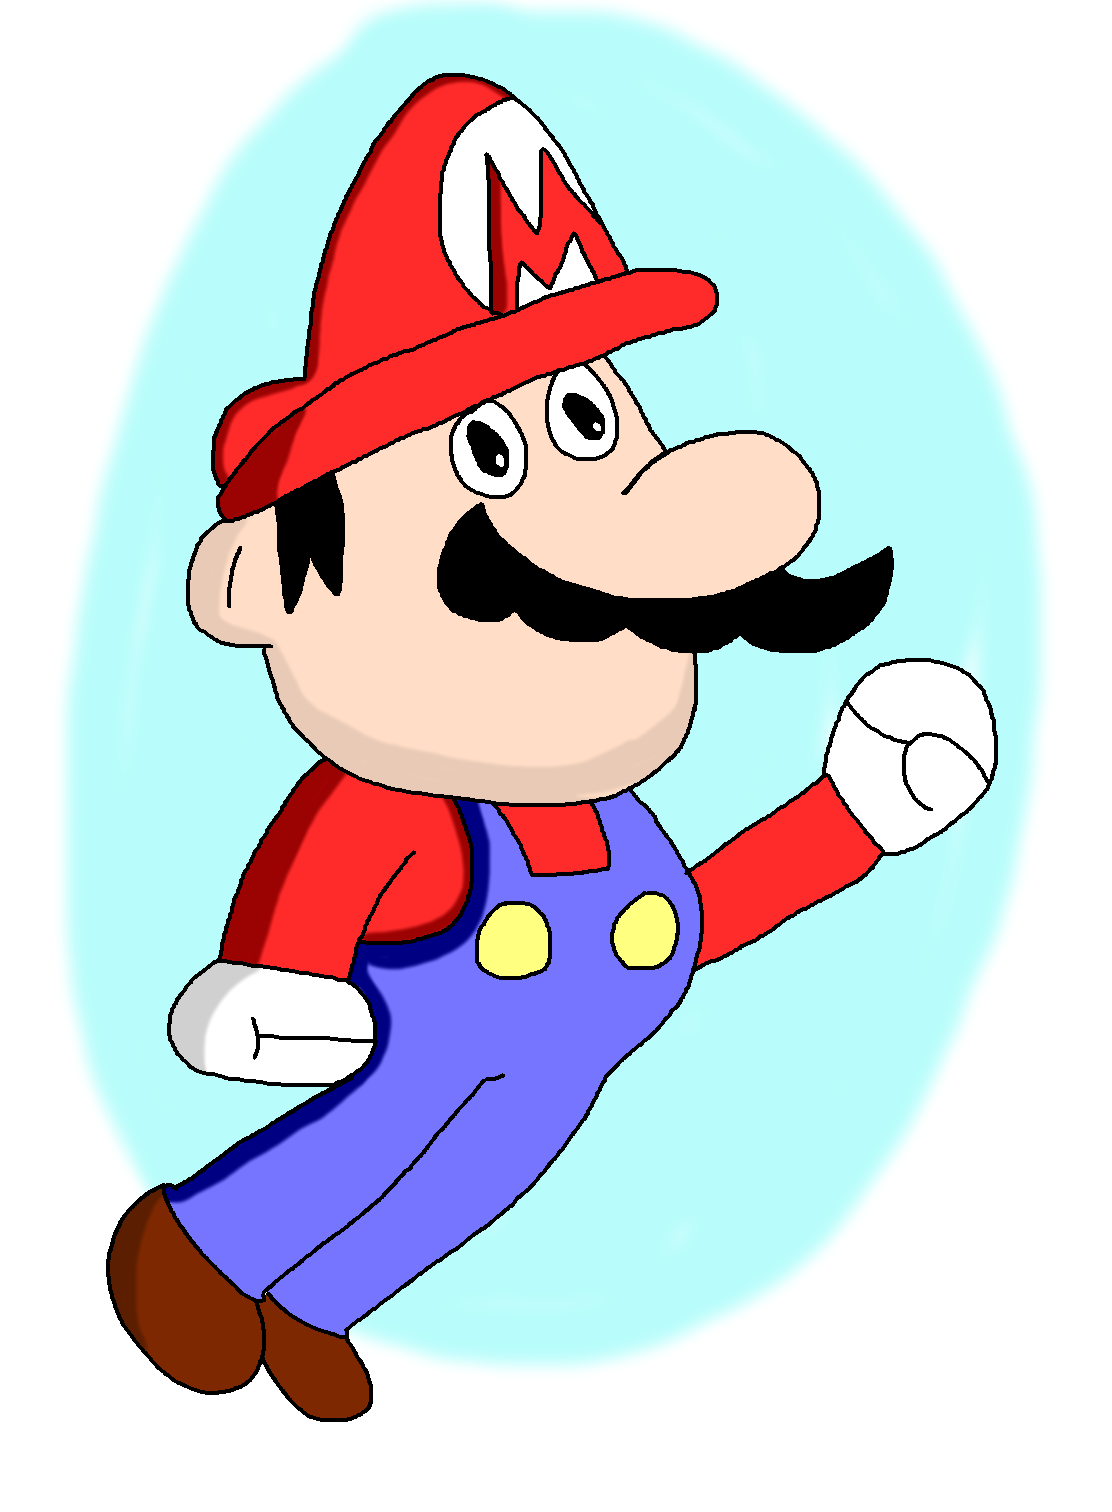 Super Mario!! by GarfieldTheCat2033